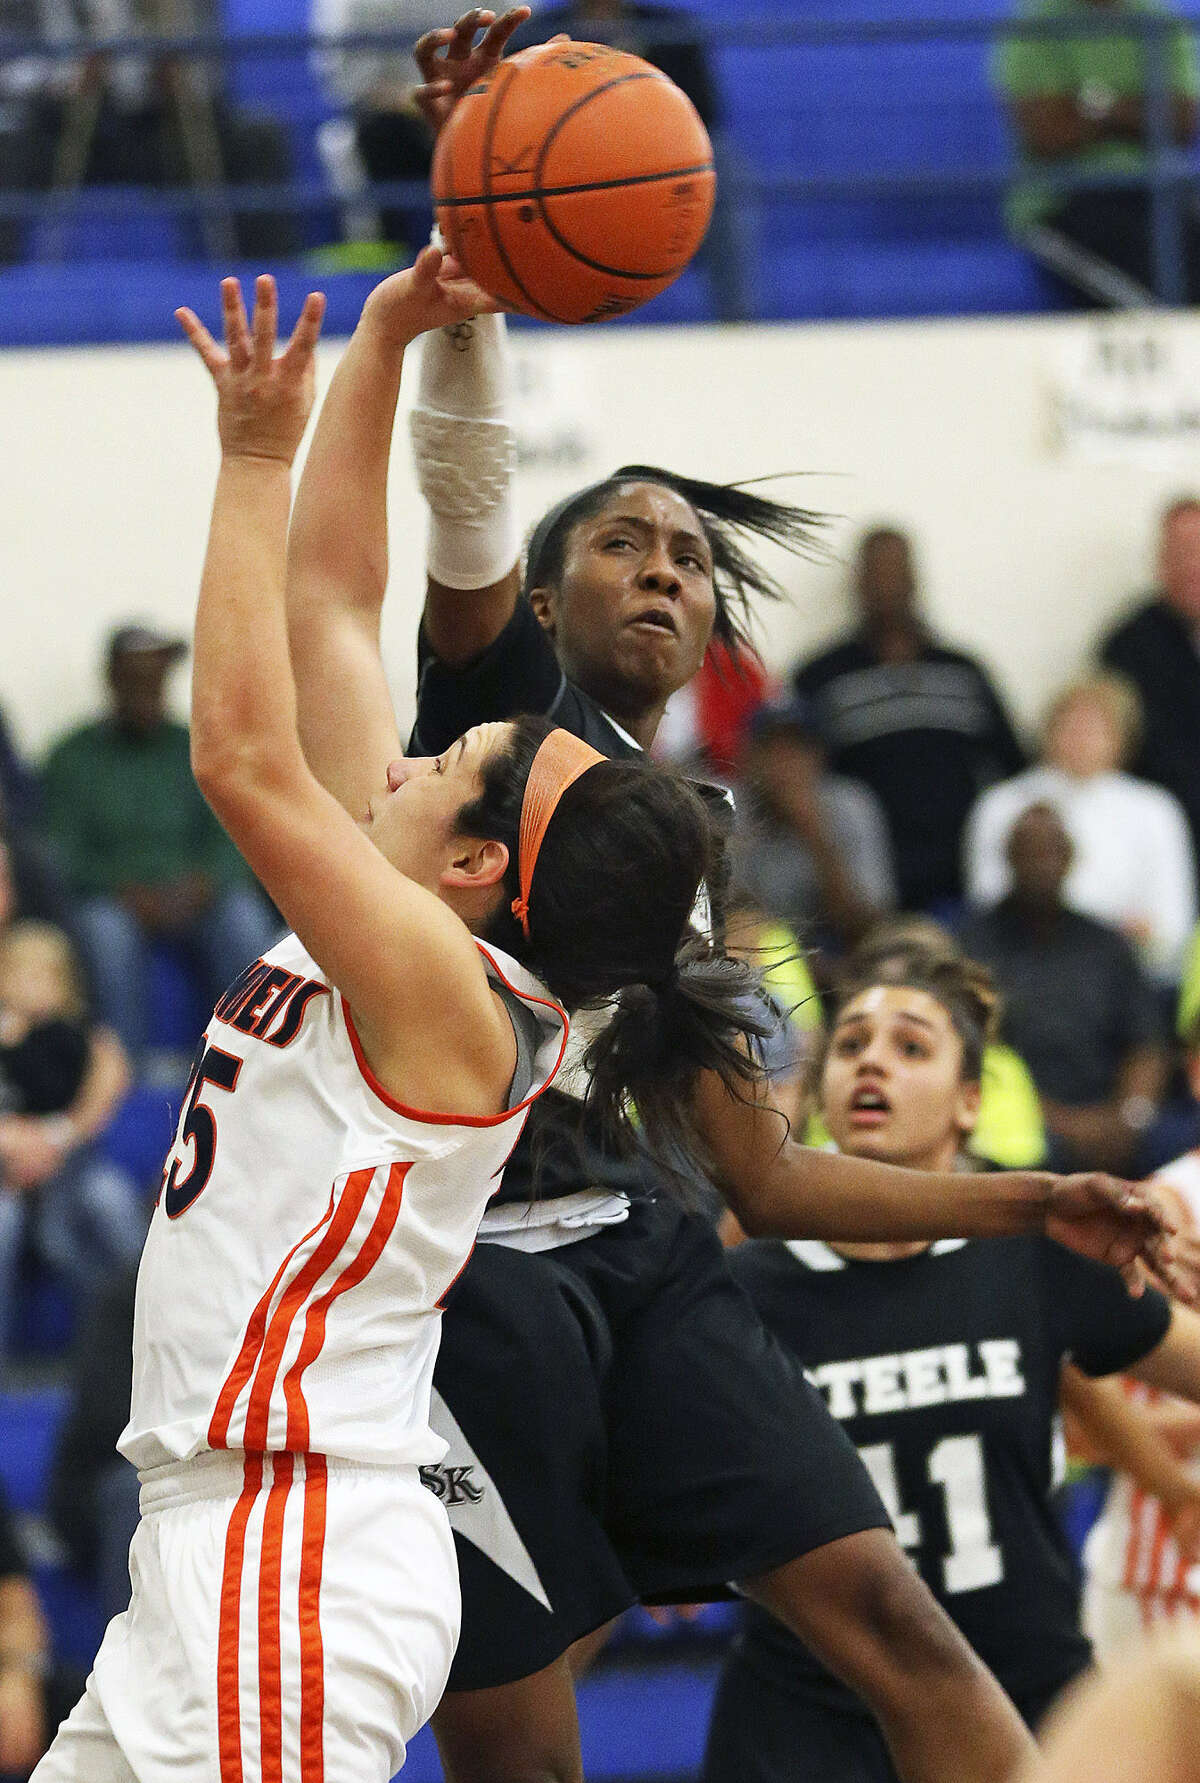 Steele forward Erika Chapman rejects the shot of Brandeis' Julia Cisneros during the first half of a Class 5A bidistrict game.